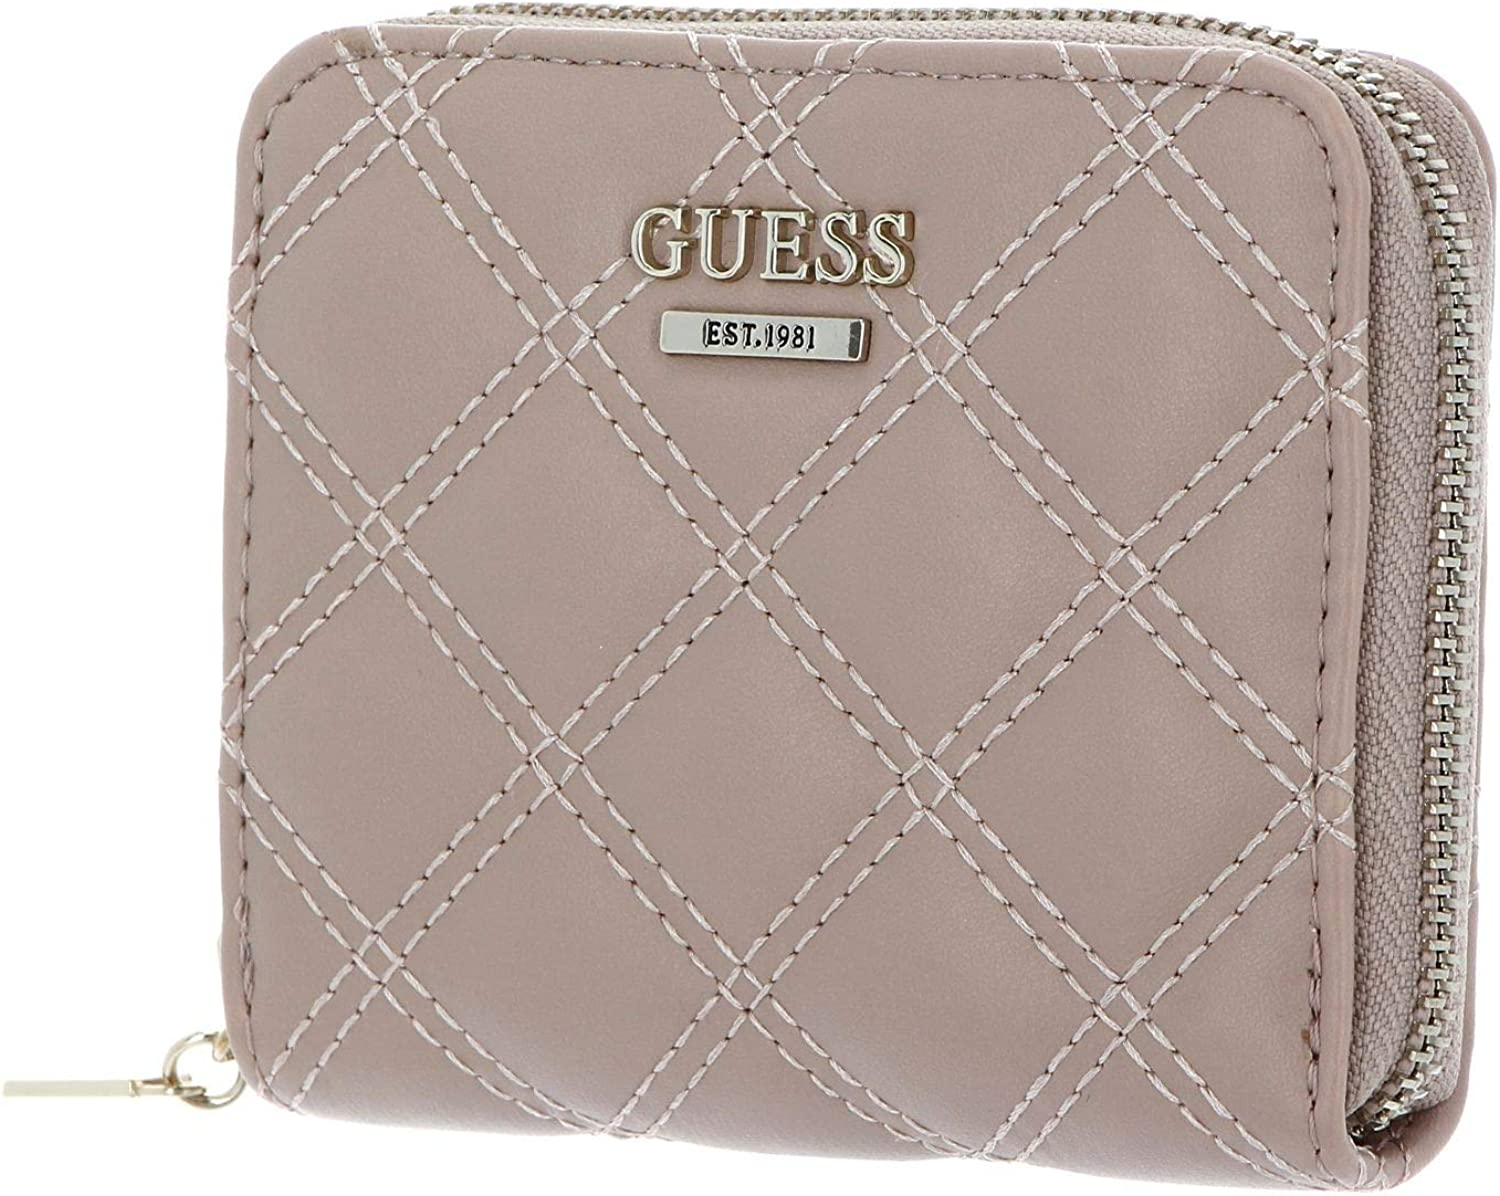 Guess Swsg69 9343 Jeans - Mujer